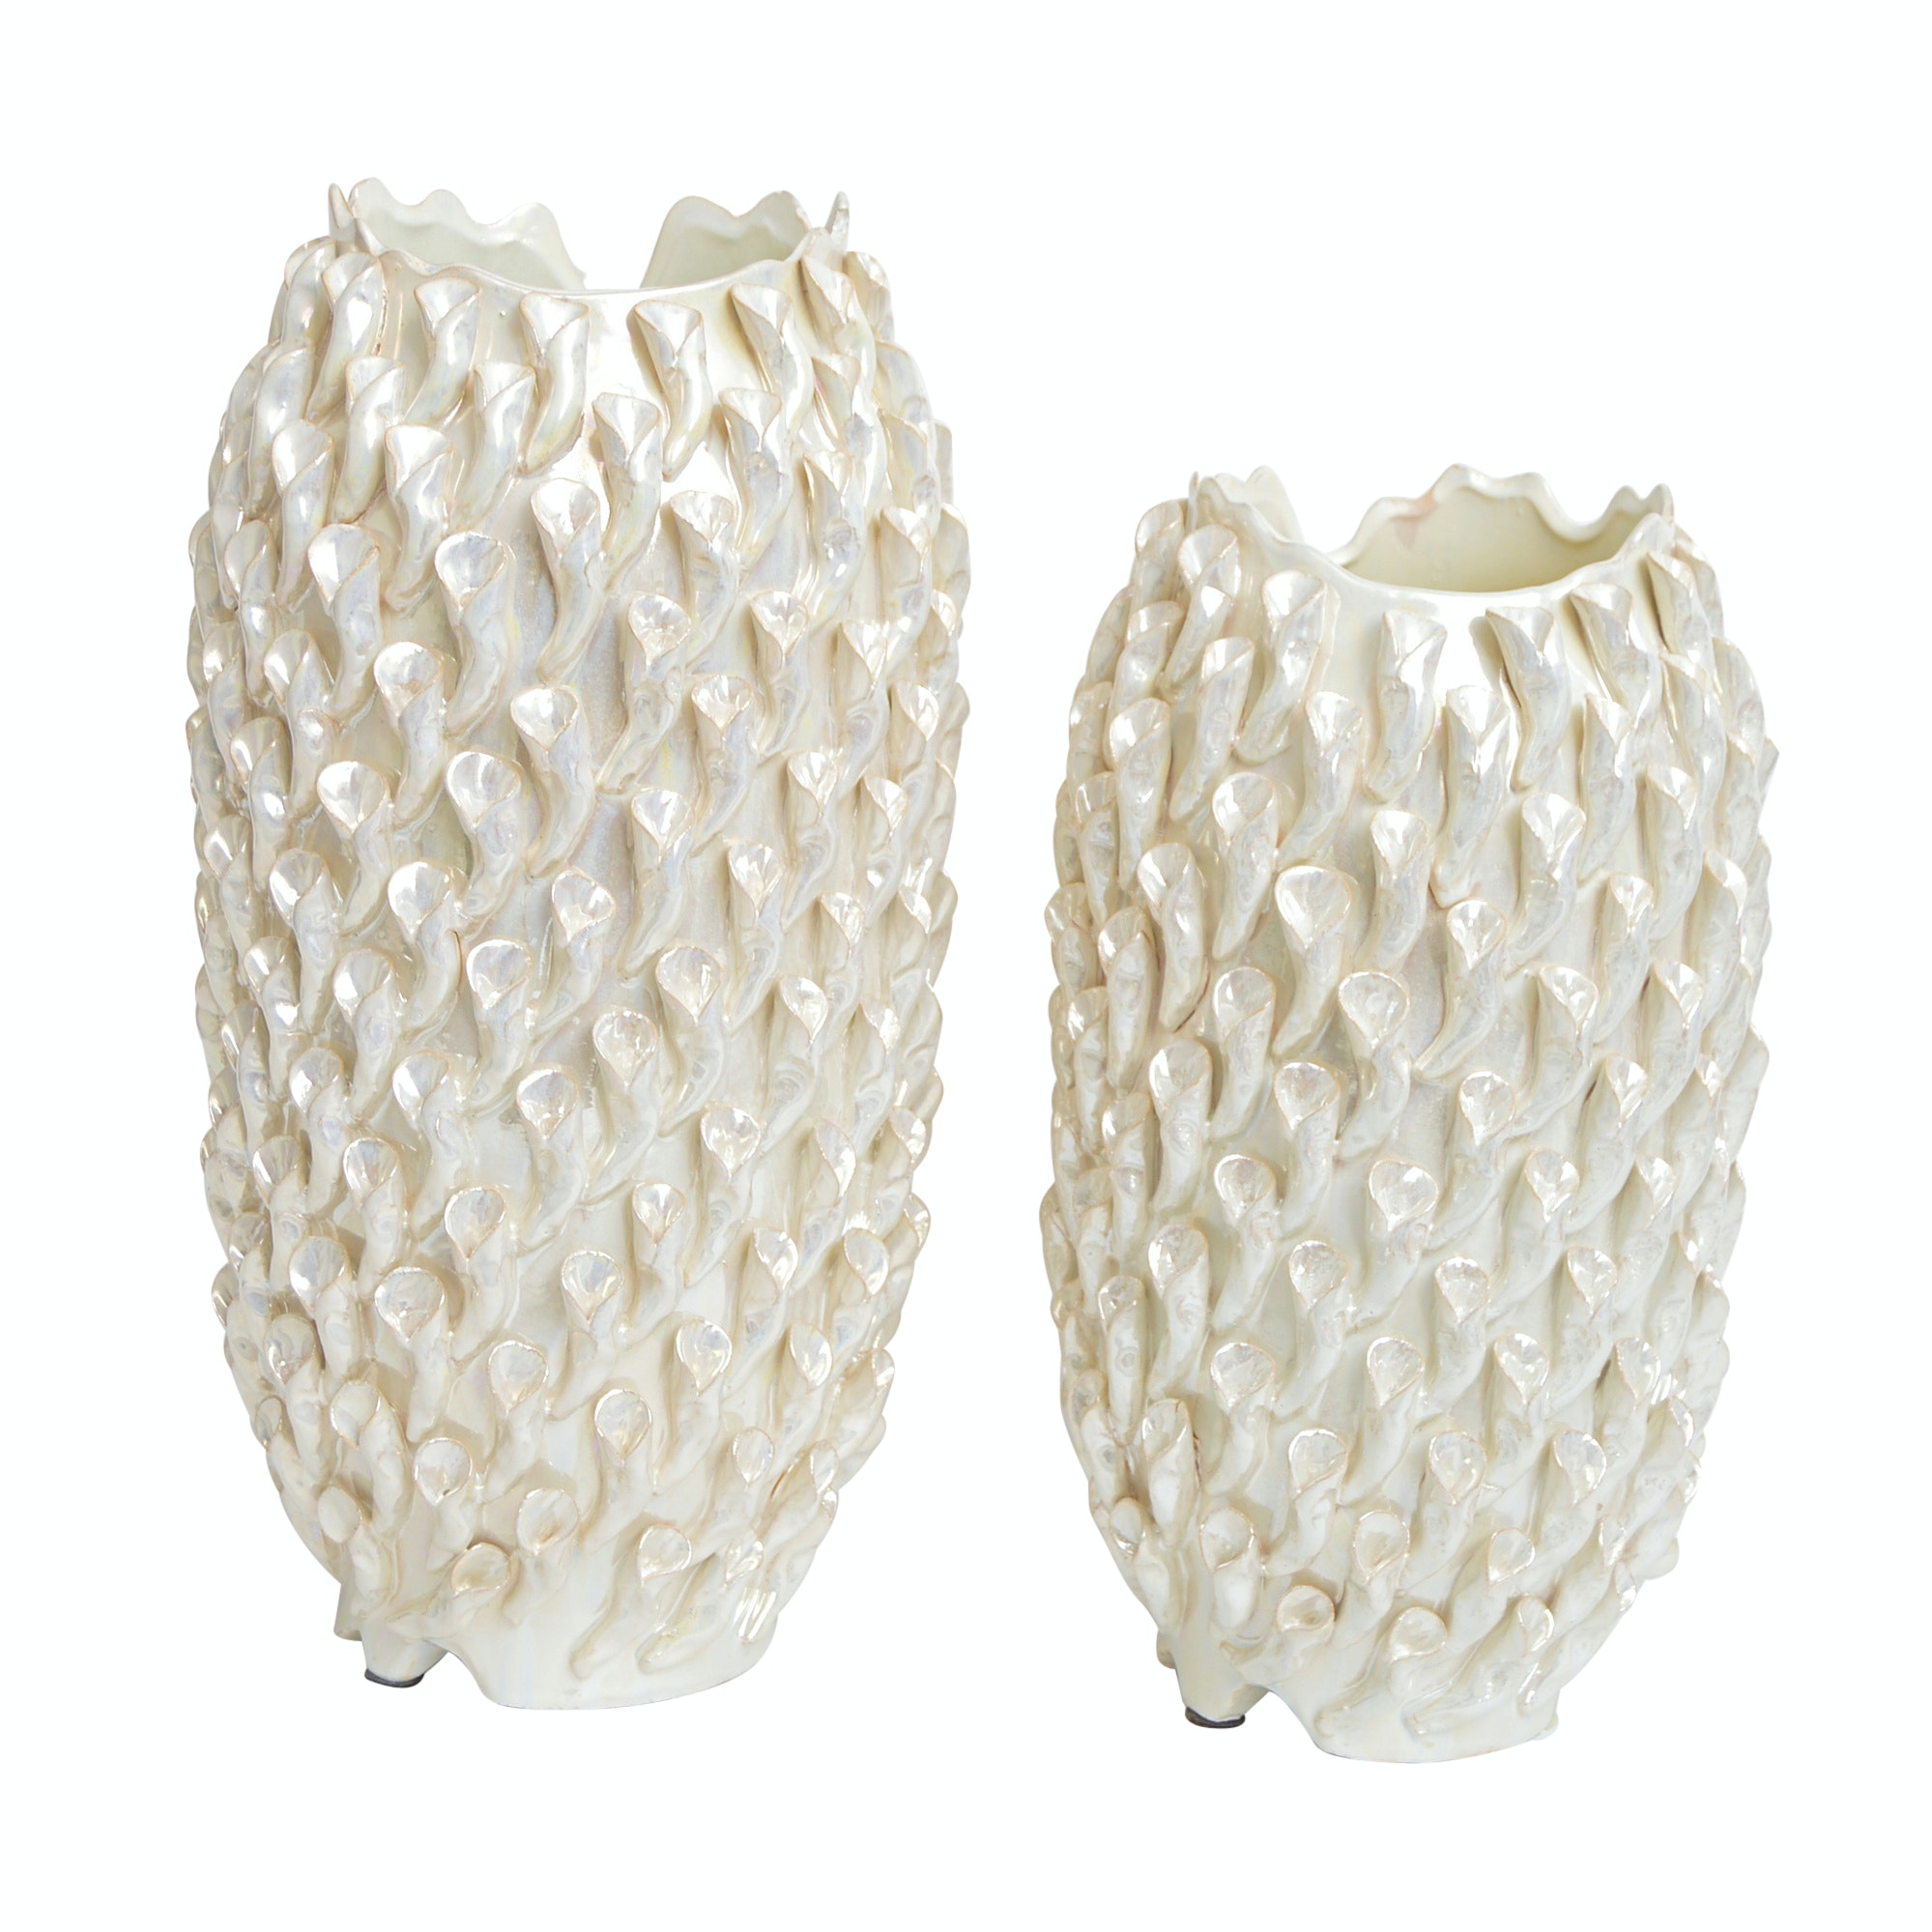 Pair of Contemporary Porcelain Vases